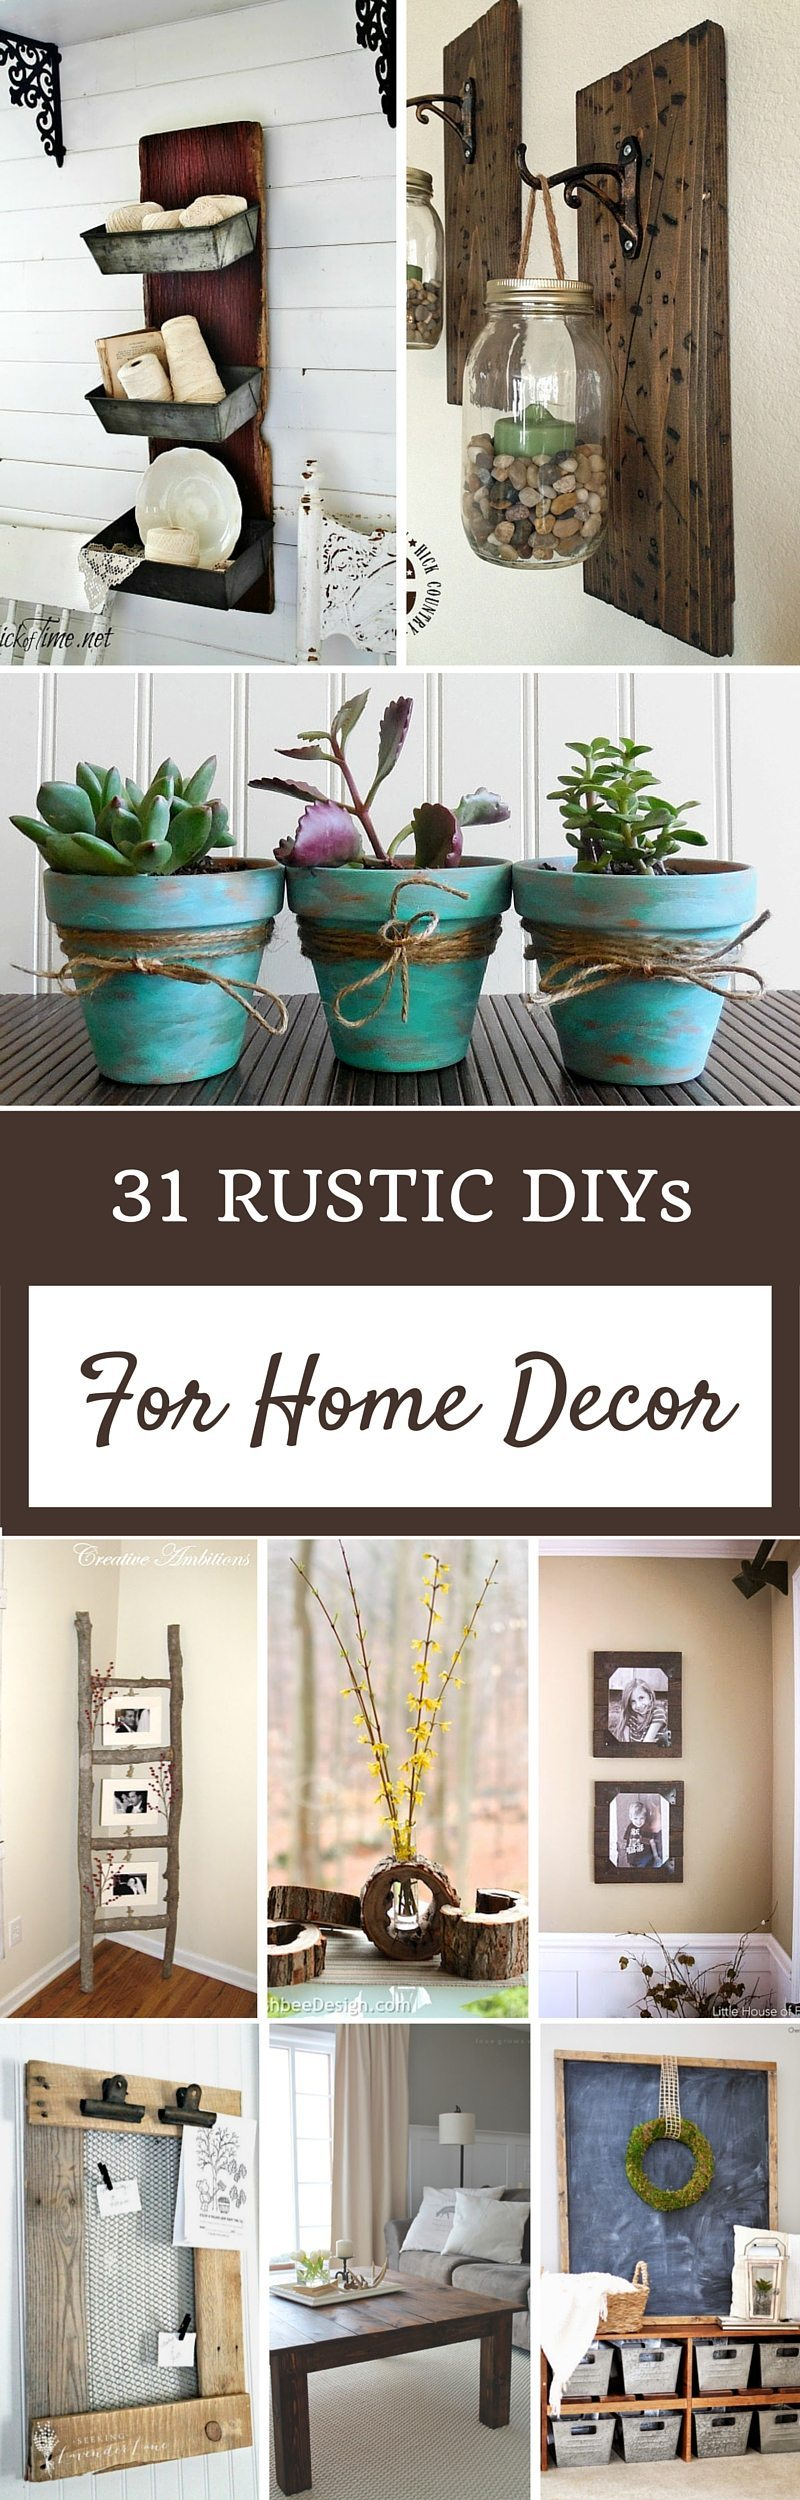 Rustic home decor ideas refresh restyle - Home decor ideas diy ...